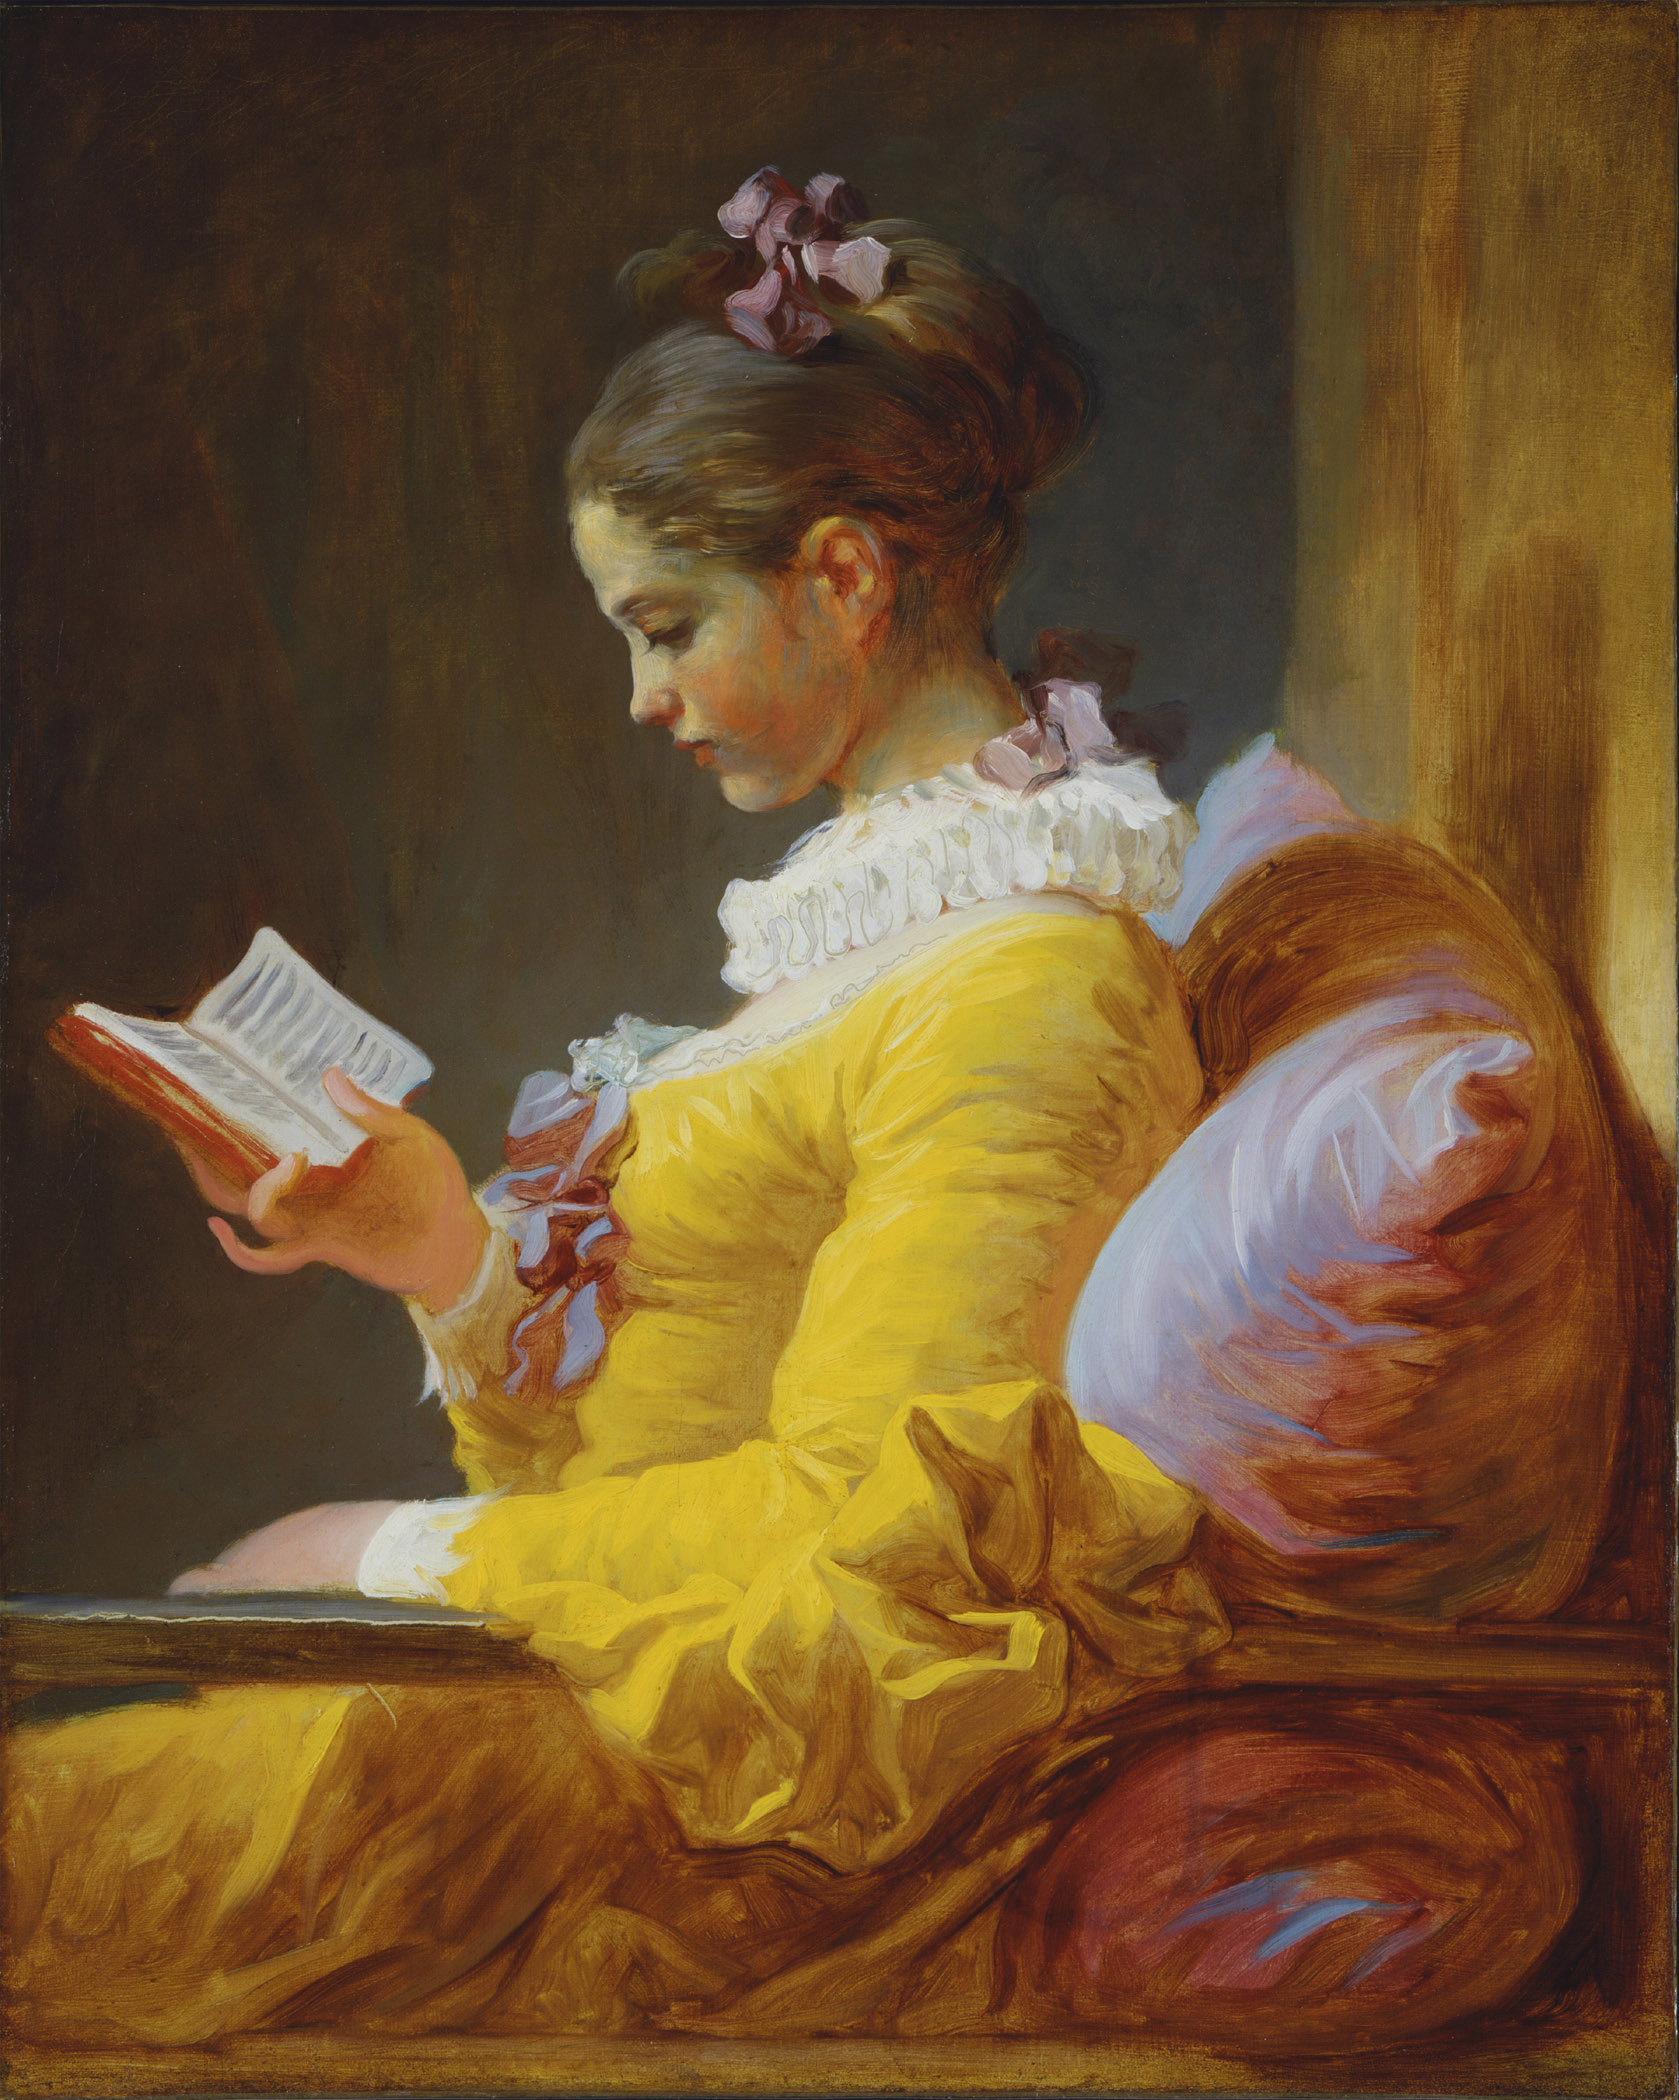 A Young Girl Reading, by Jean Honoré Fragonard, circa 1776